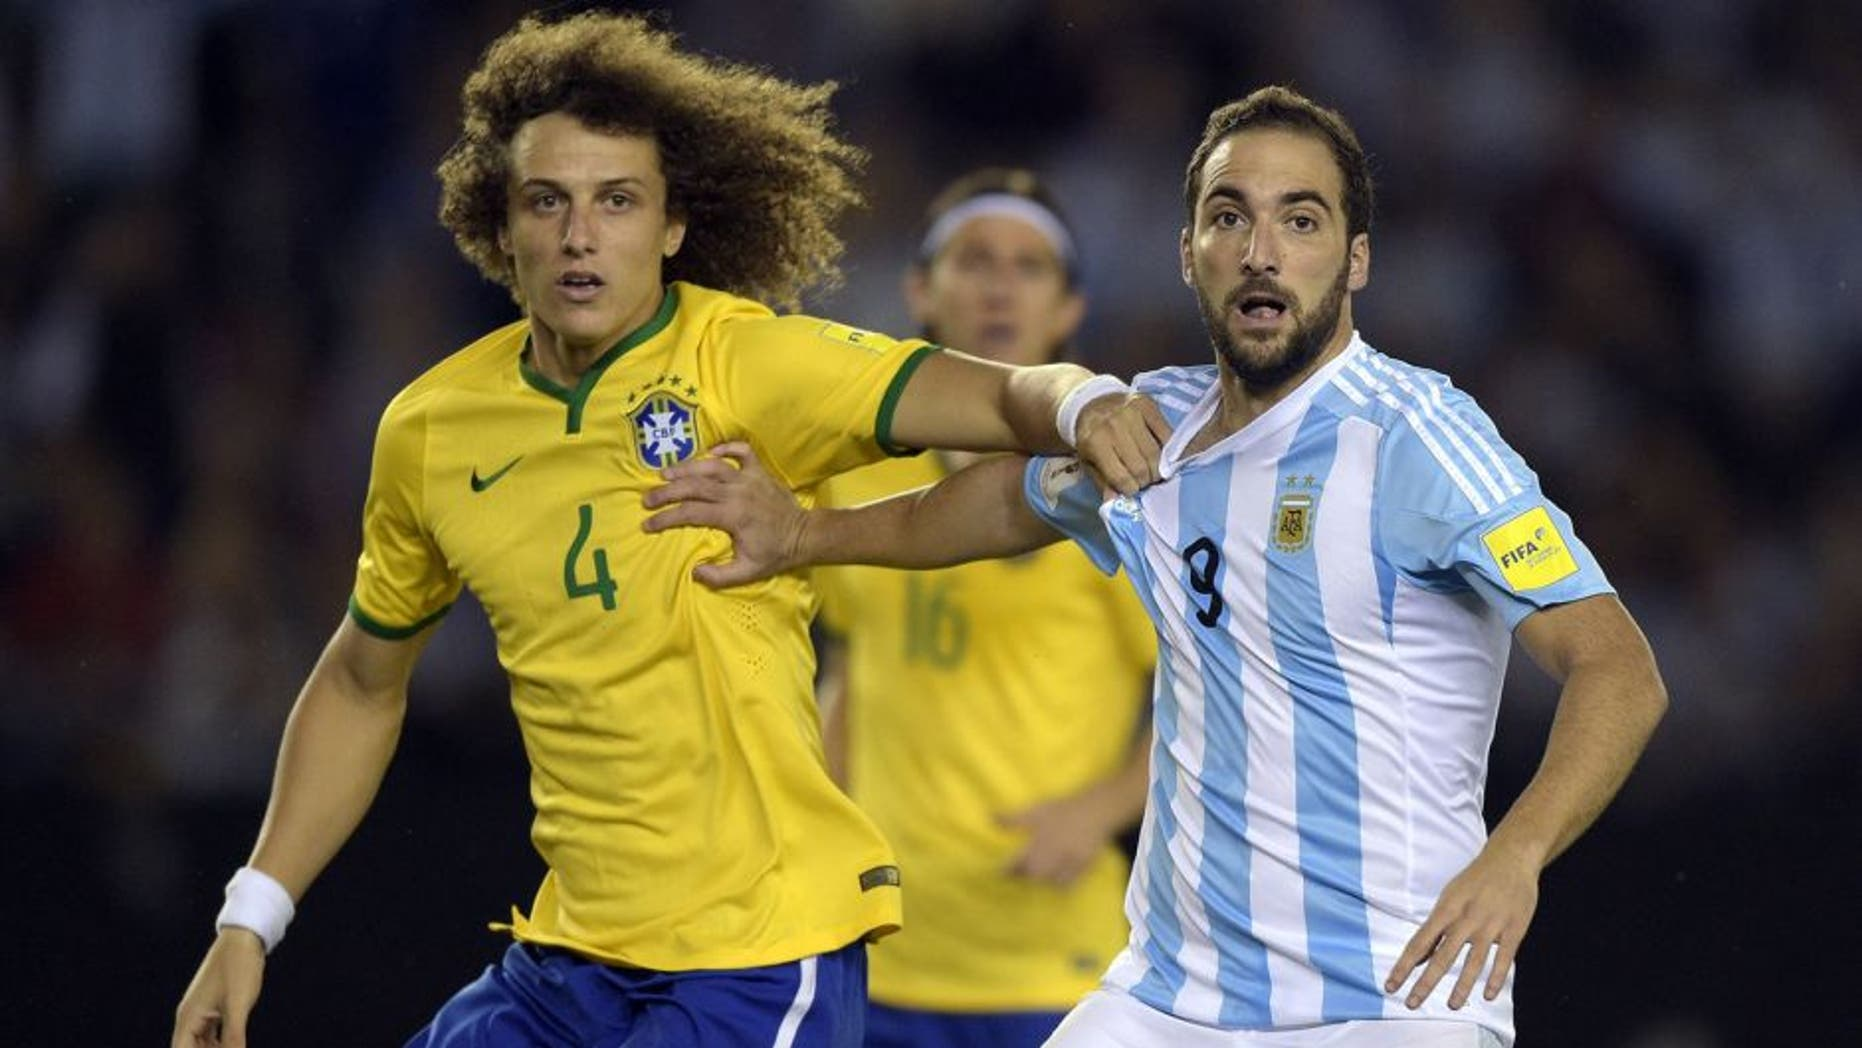 Brazil's David Luiz(L) and Argentina's Gonzalo Higuain vie during their Russia 2018 FIFA World Cup South American Qualifiers football match, in Buenos Aires, on November 13, 2015. AFP PHOTO / JUAN MABROMATA (Photo credit should read JUAN MABROMATA/AFP/Getty Images)